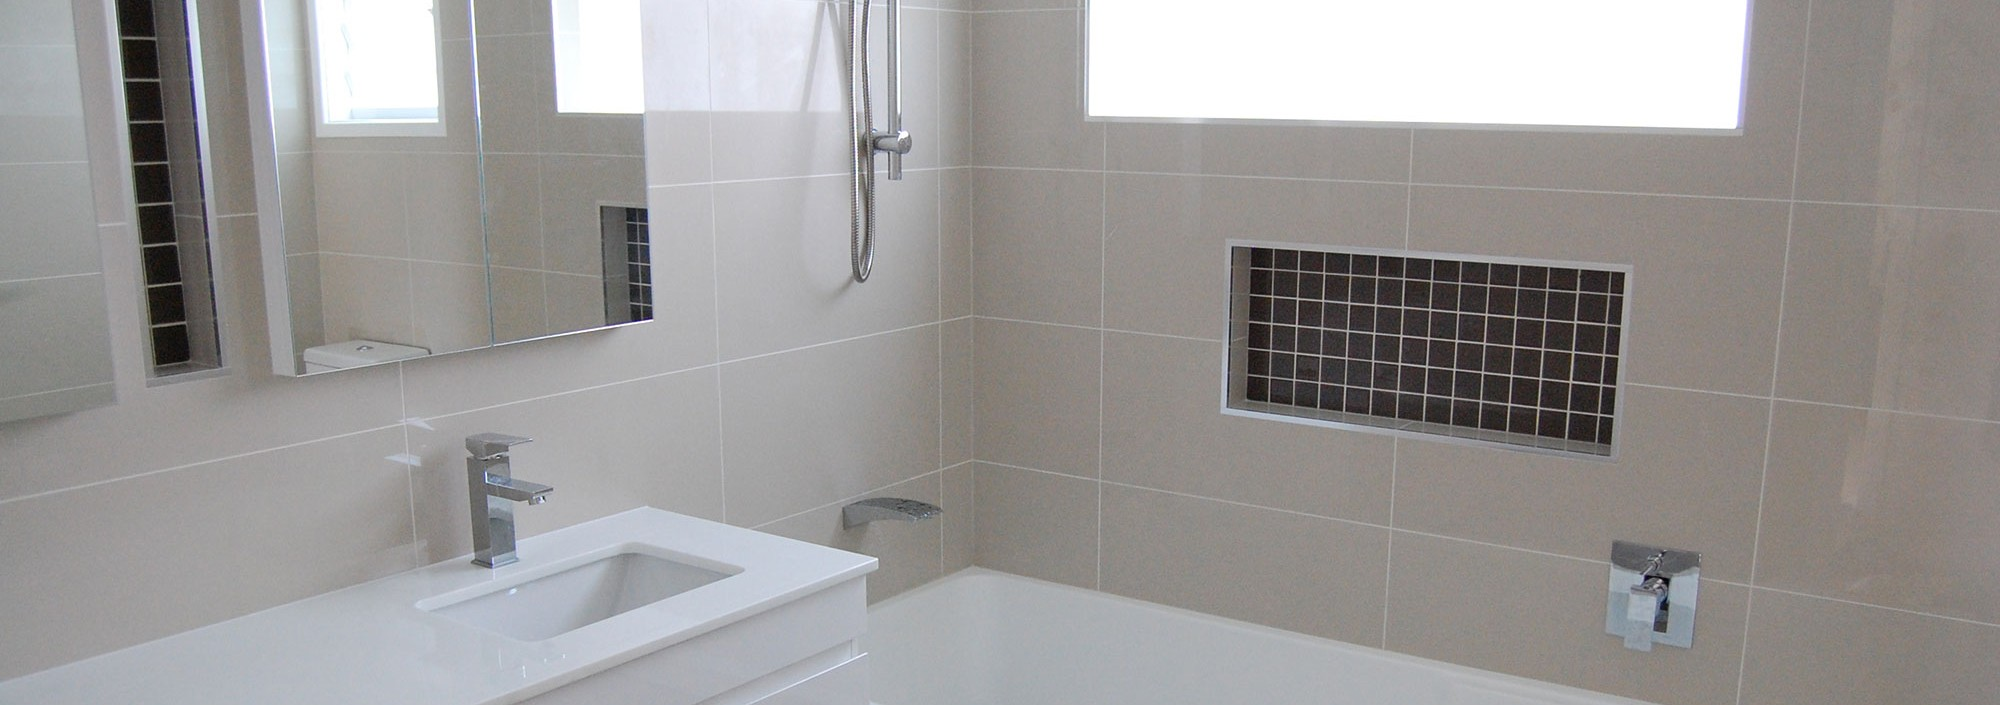 Leerberg tiling wall floor bathroom tilers in sydney for Bathroom remodelling sydney